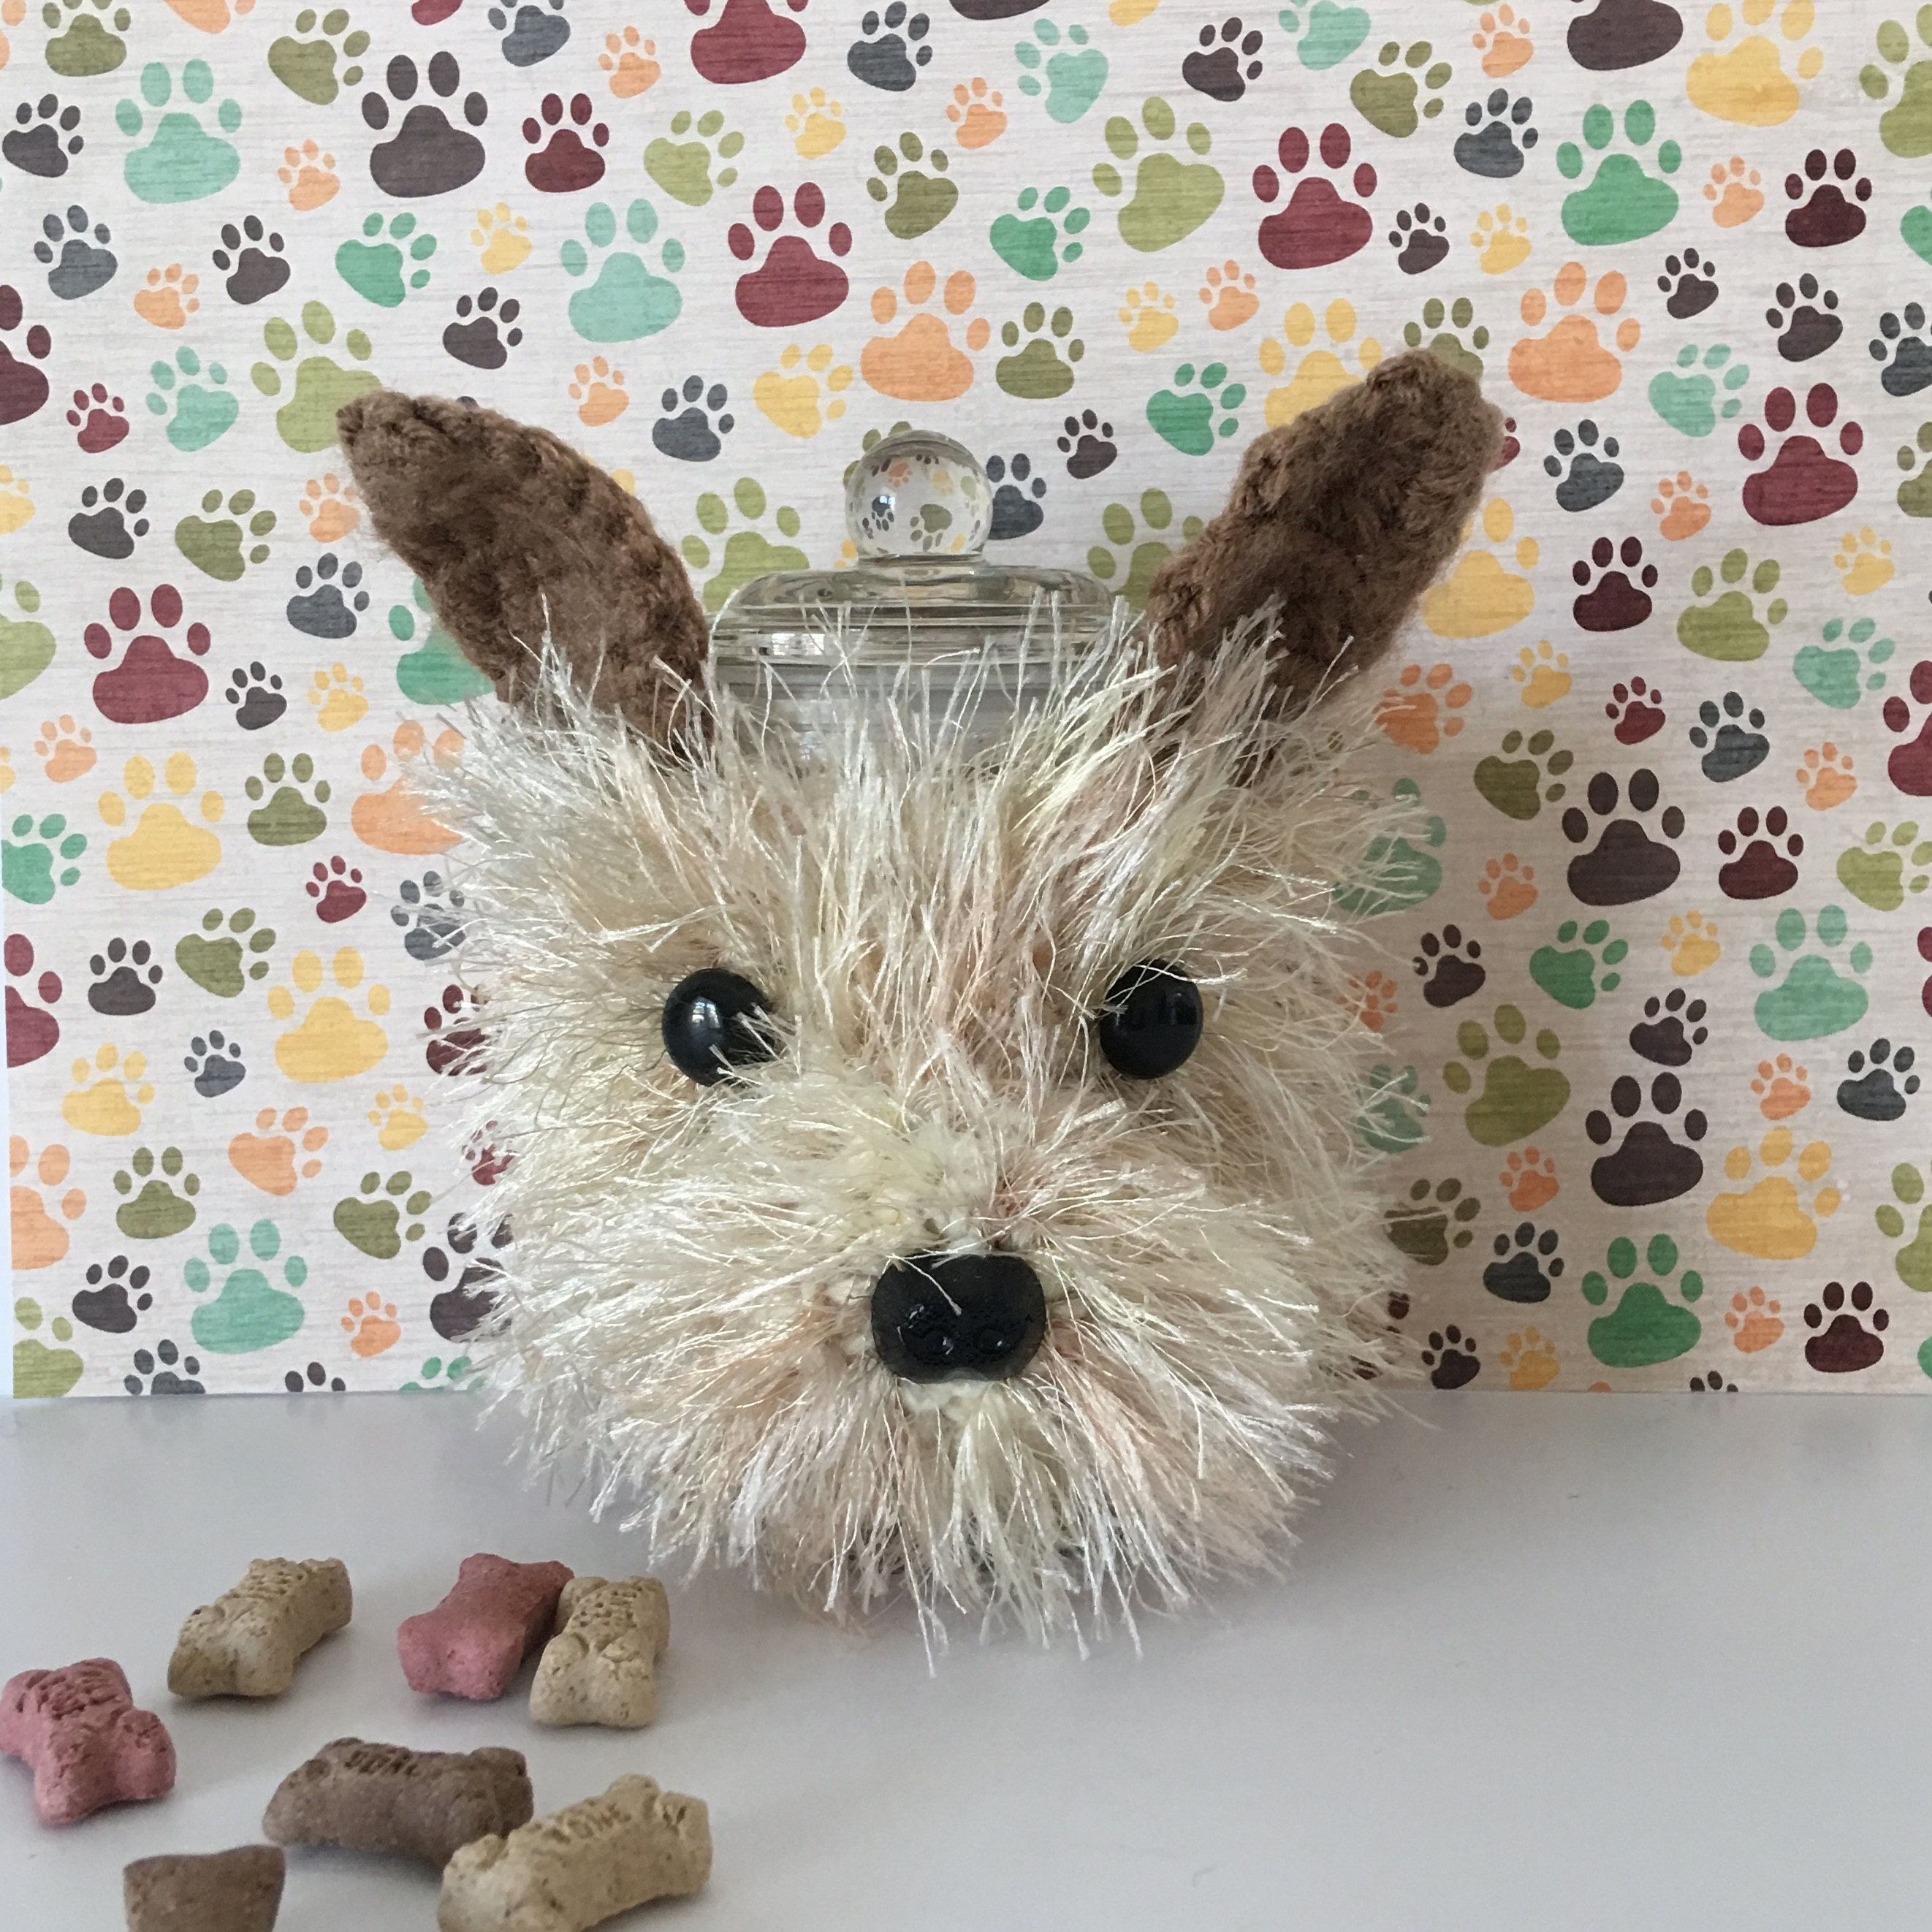 Amigurumi Schemi Gratis : Crocket Kit - Amigurumi Kit - Crochet Pattern Dog ...